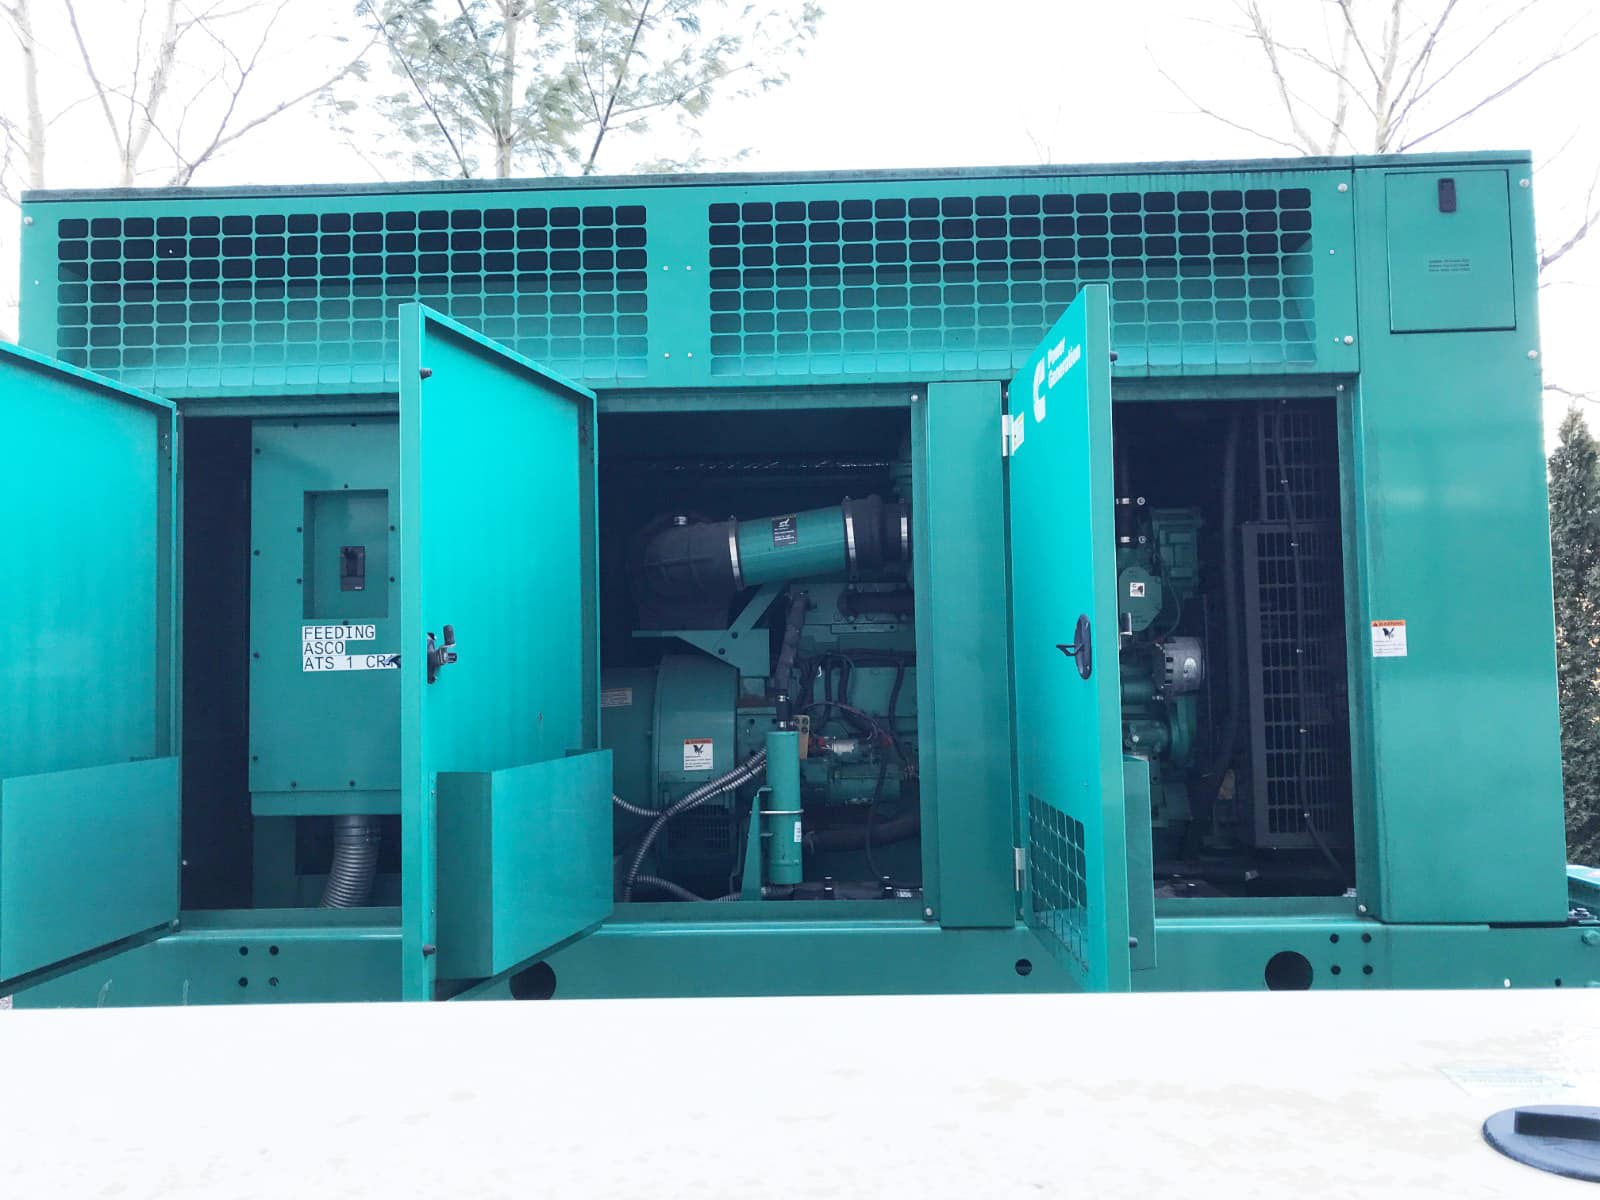 Used 500 kW Cummins DFEK Diesel Generator – EPA Tier 2 – COMING IN!